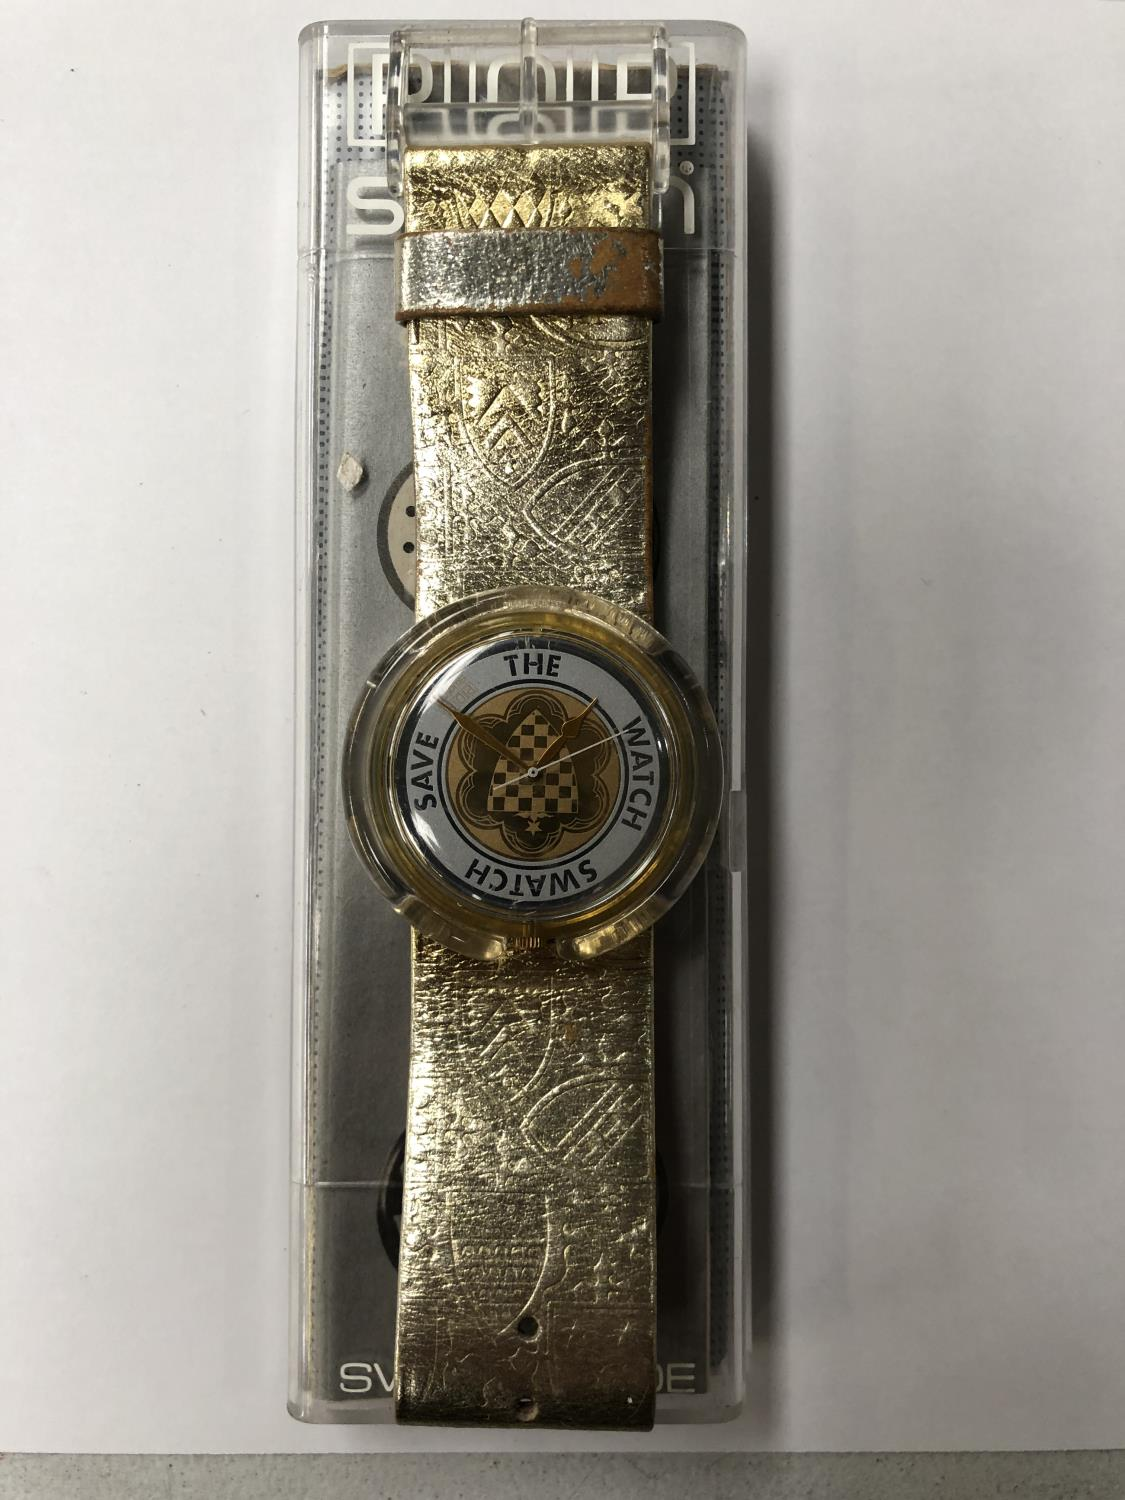 Lot 858 - A 1991 BOXED SWATCH WATCH